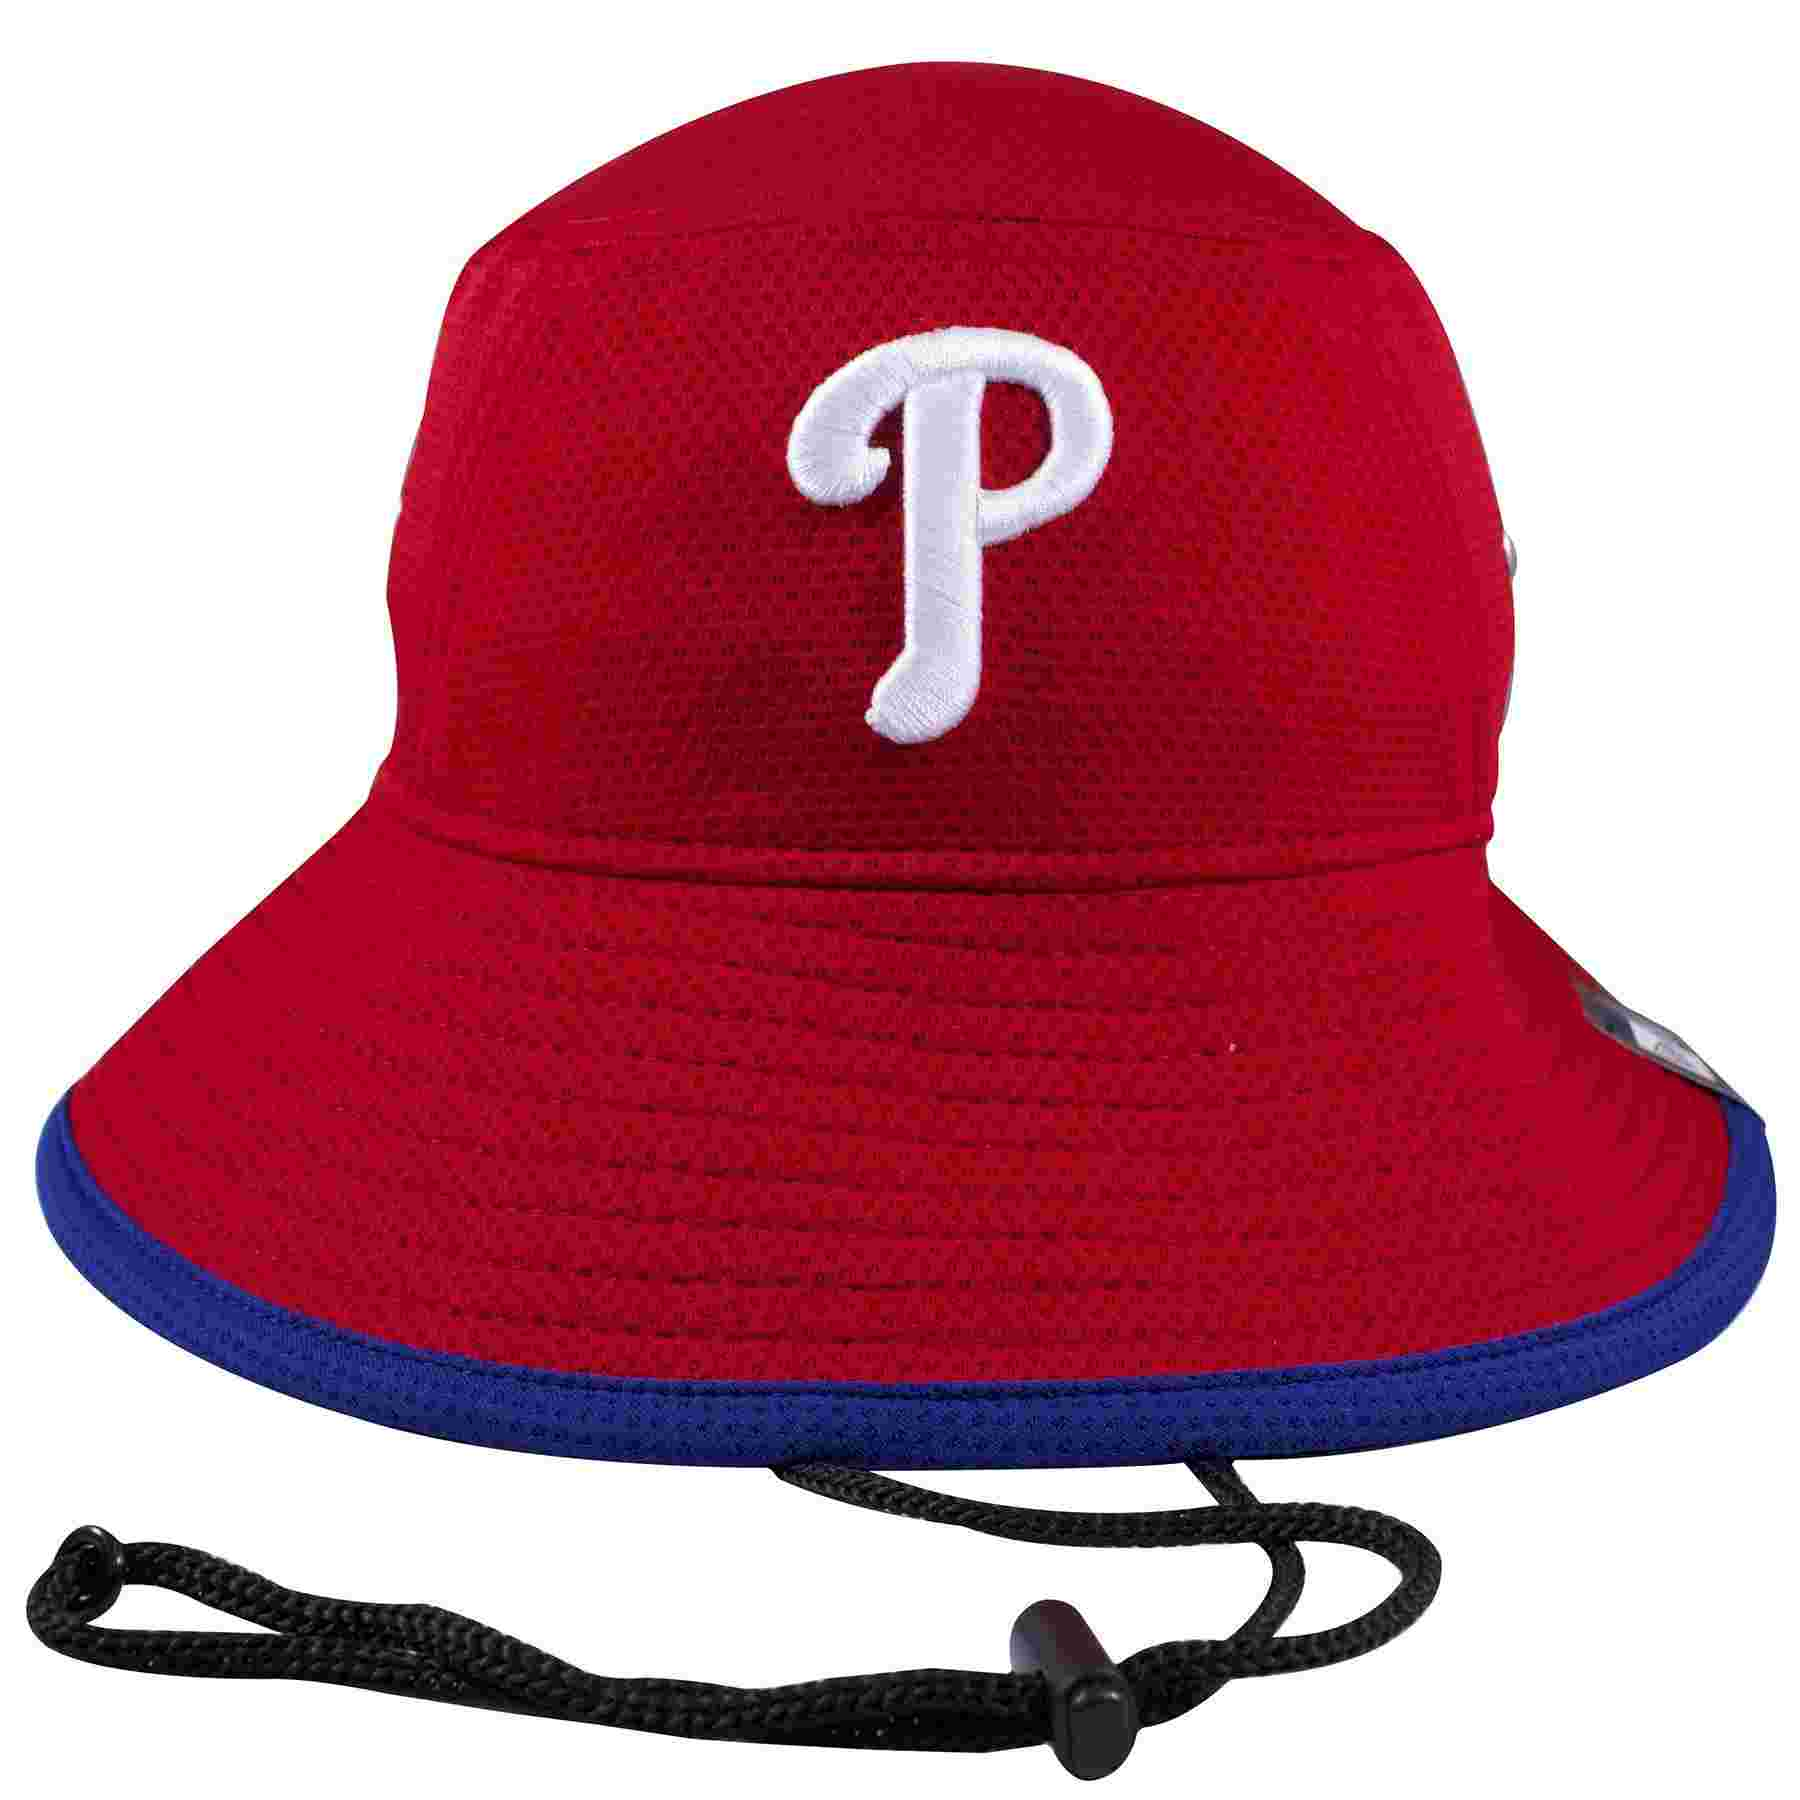 Cliparts Library: Reading Phillies Clipart.